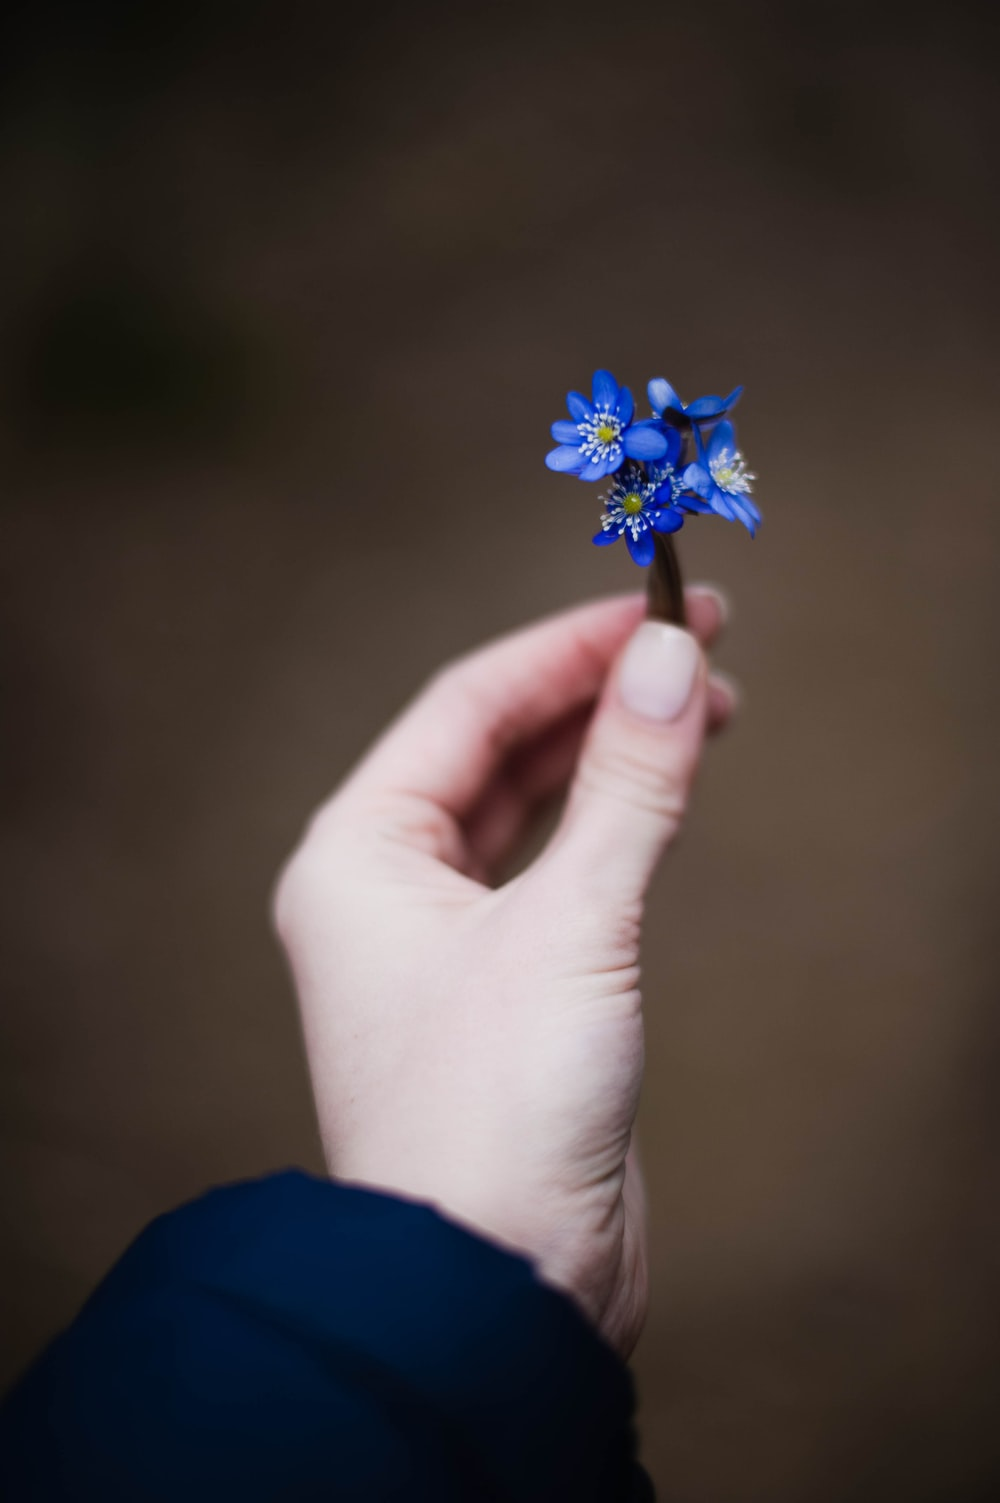 person holding blue flower in close up photography